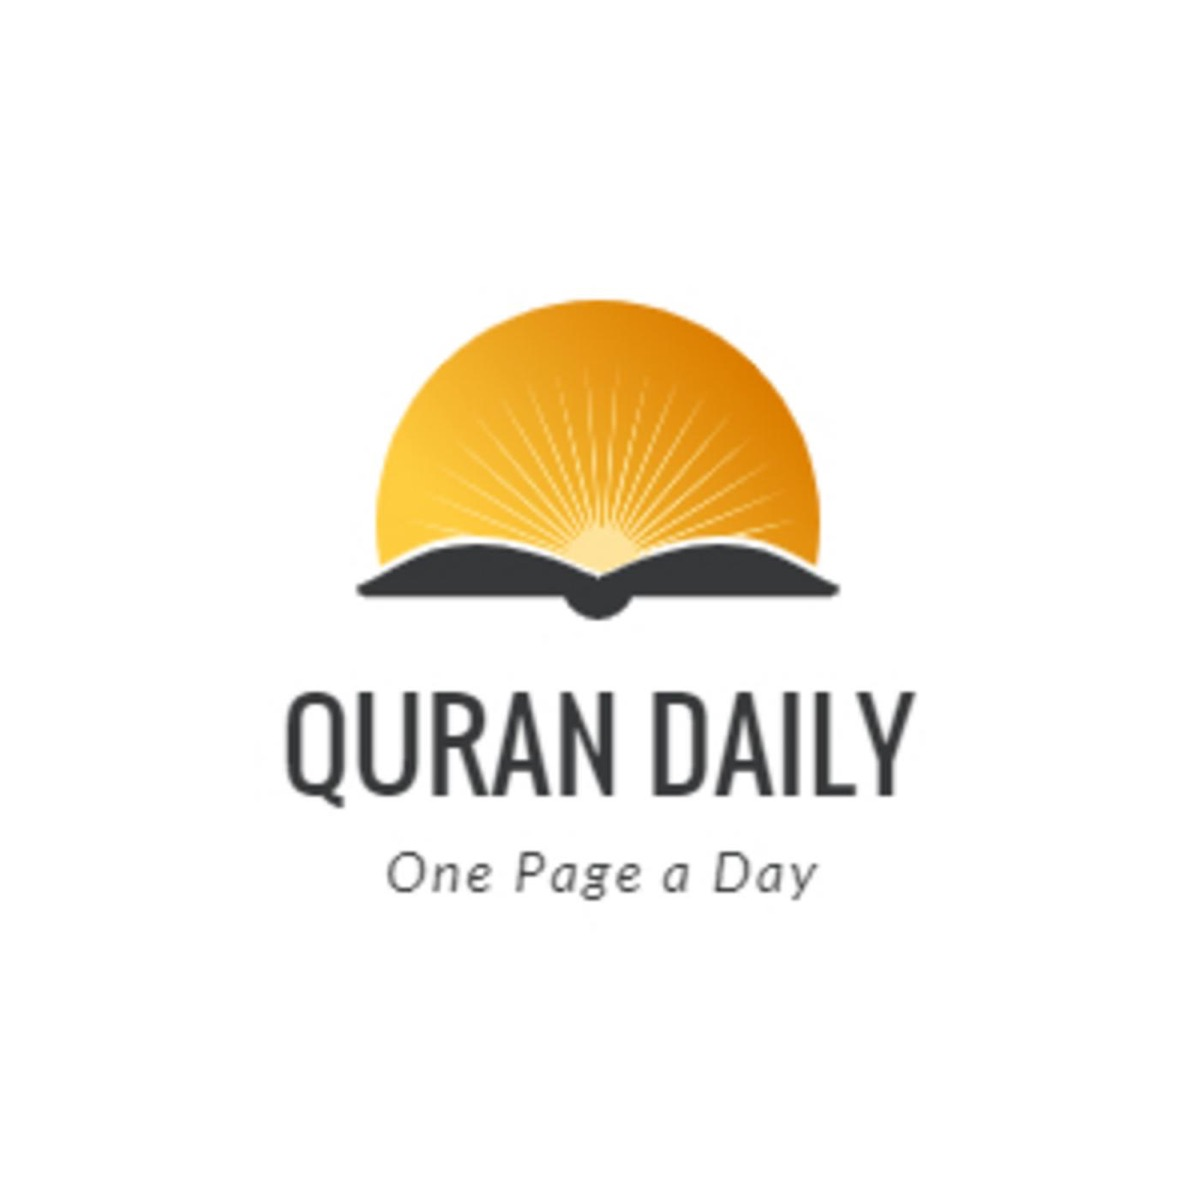 Quran Daily - One Page a Day